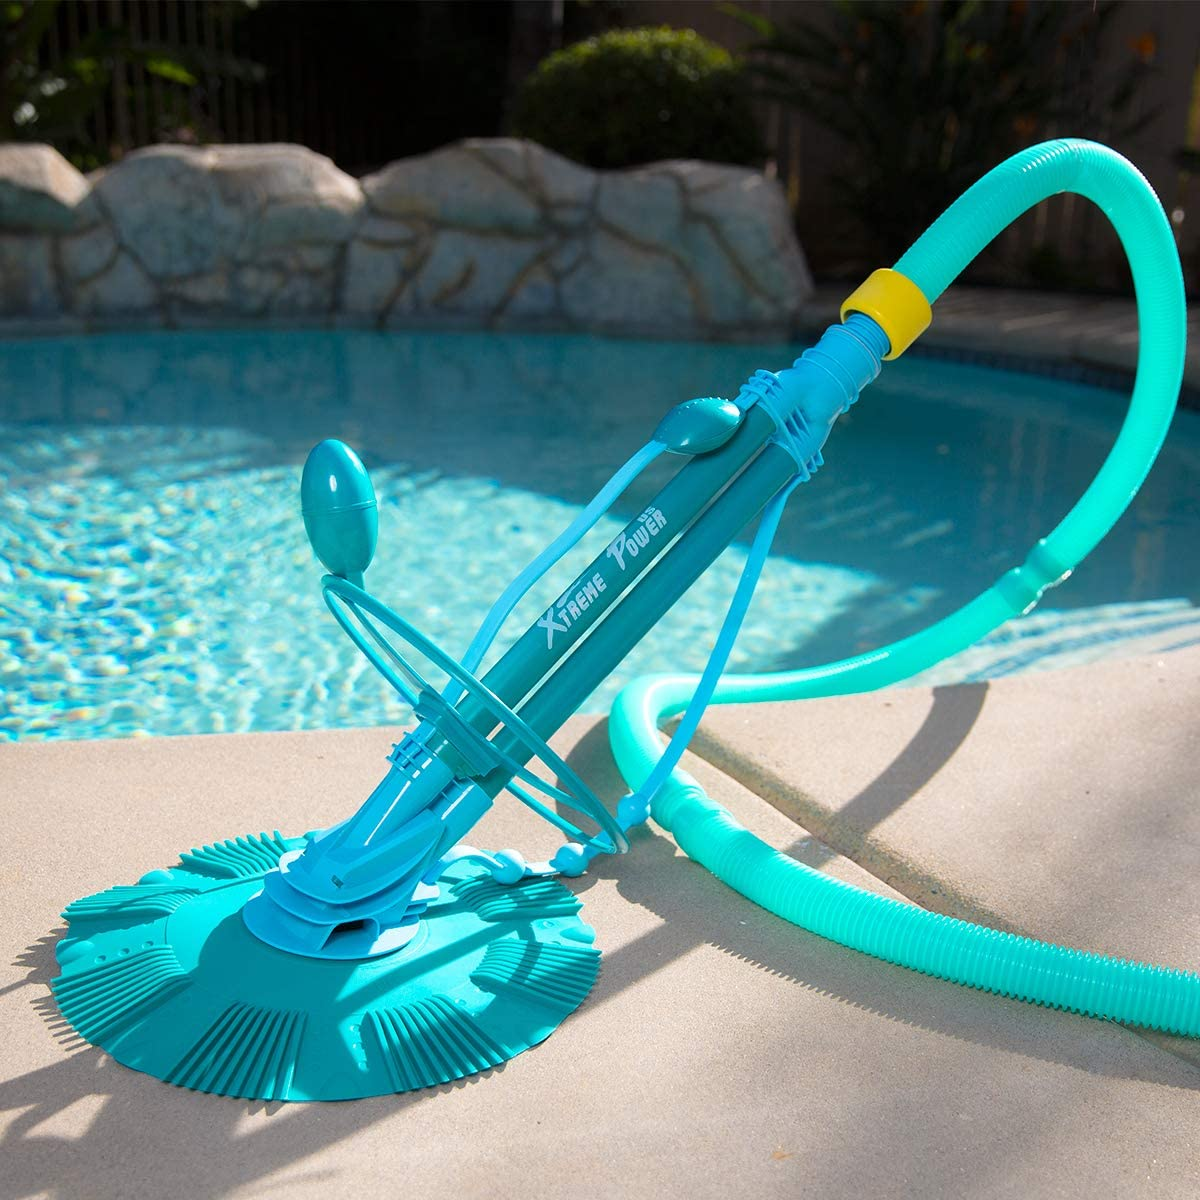 Best Suction Pool Cleaners for Leaves 2020